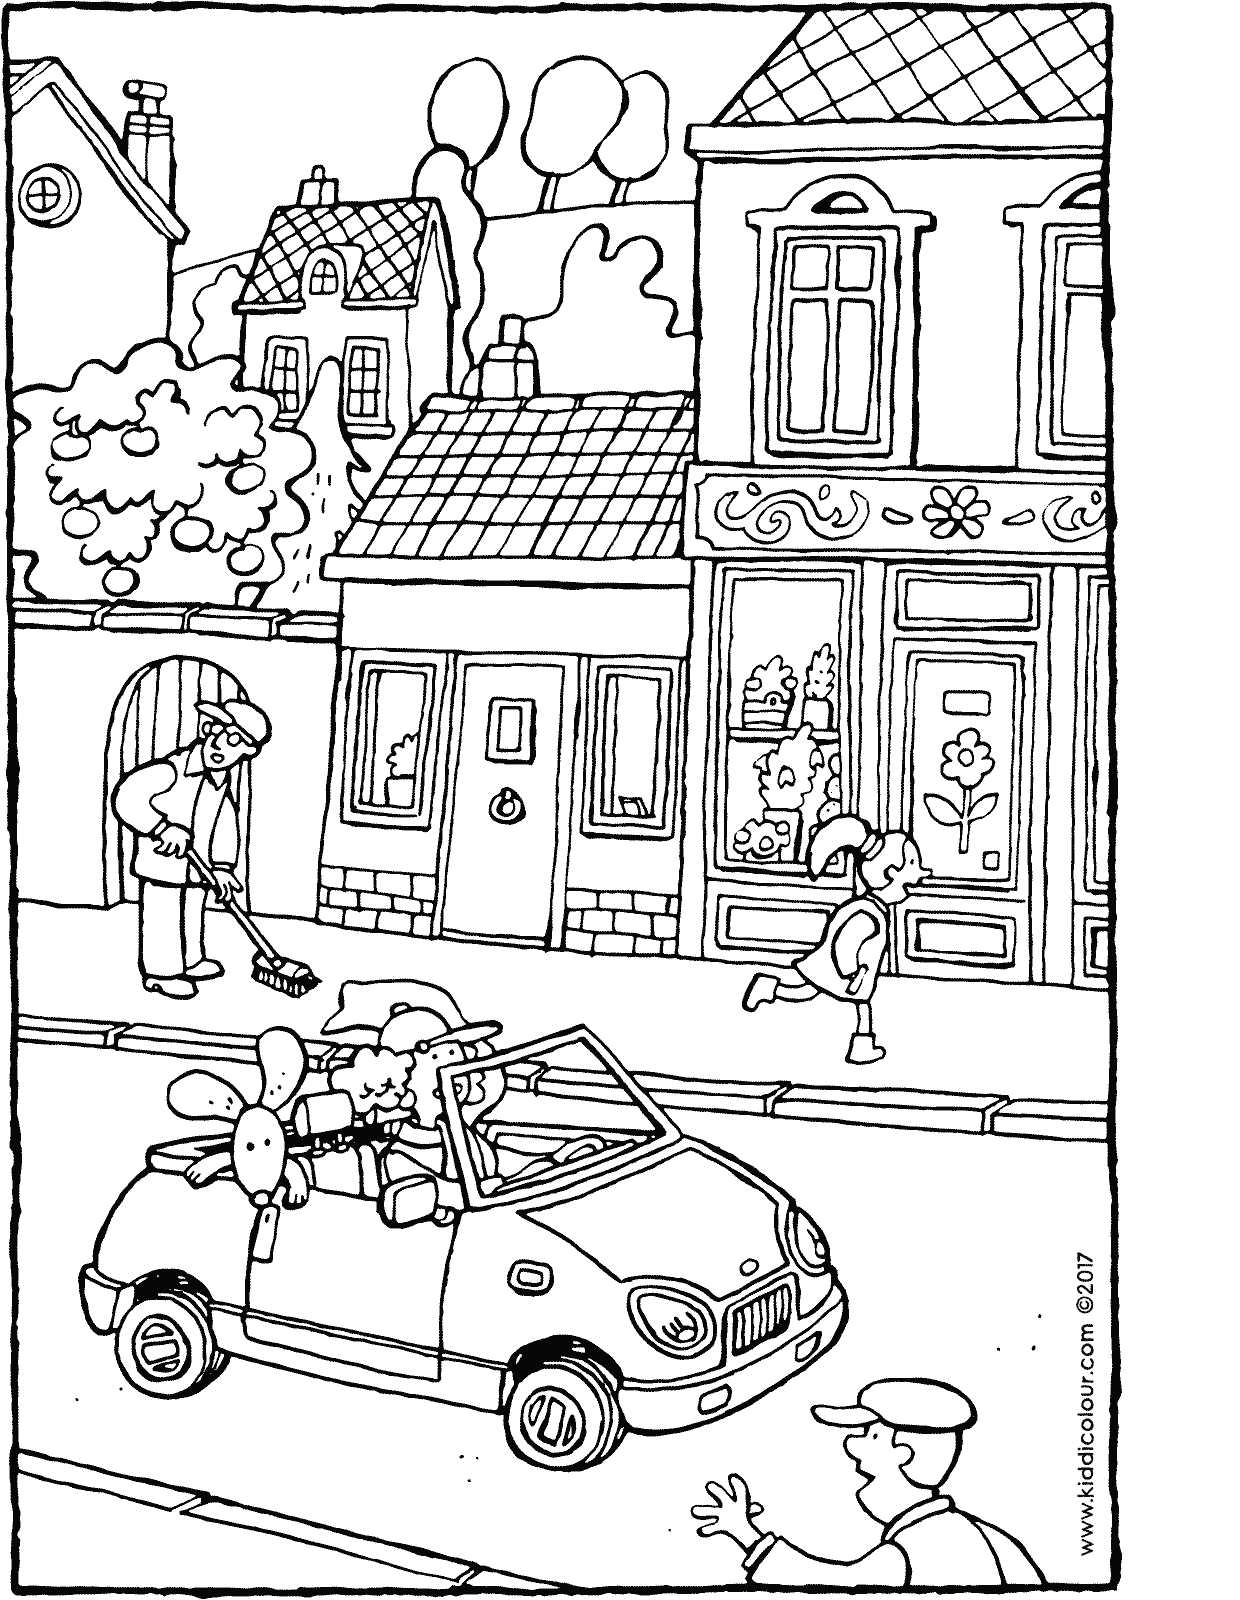 a car in the street colouring page drawing picture 01V